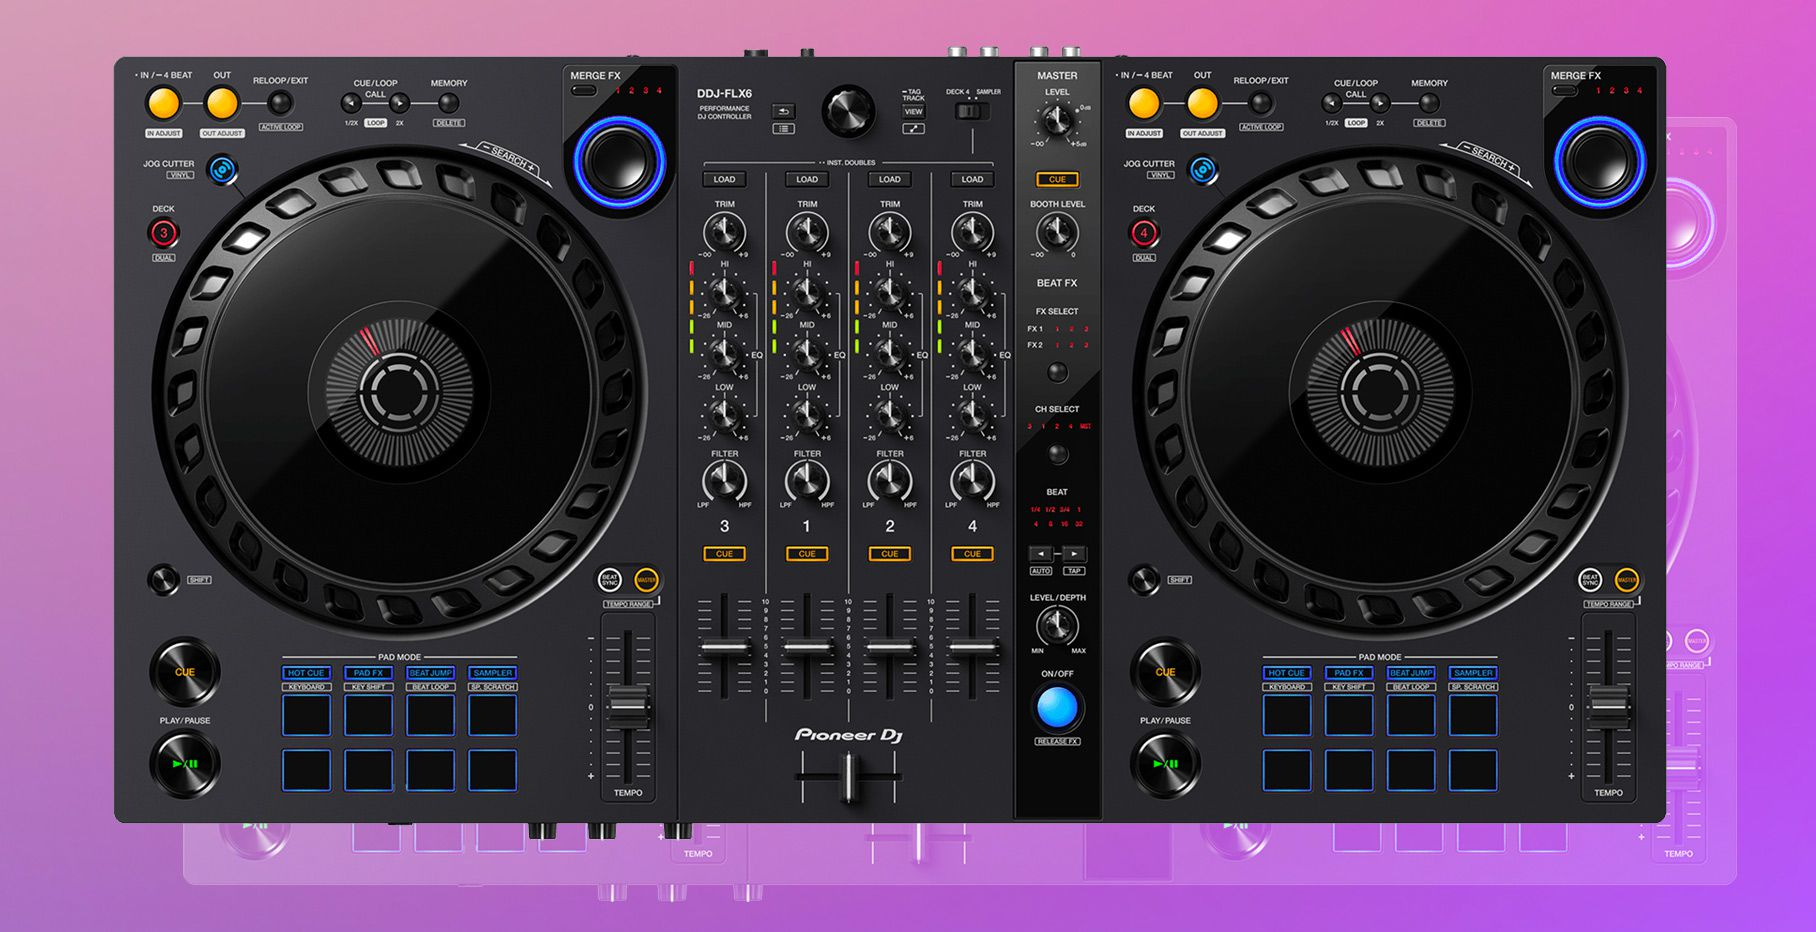 Review: DDJ-FLX6 –a feature-packed, midrange controller for $599